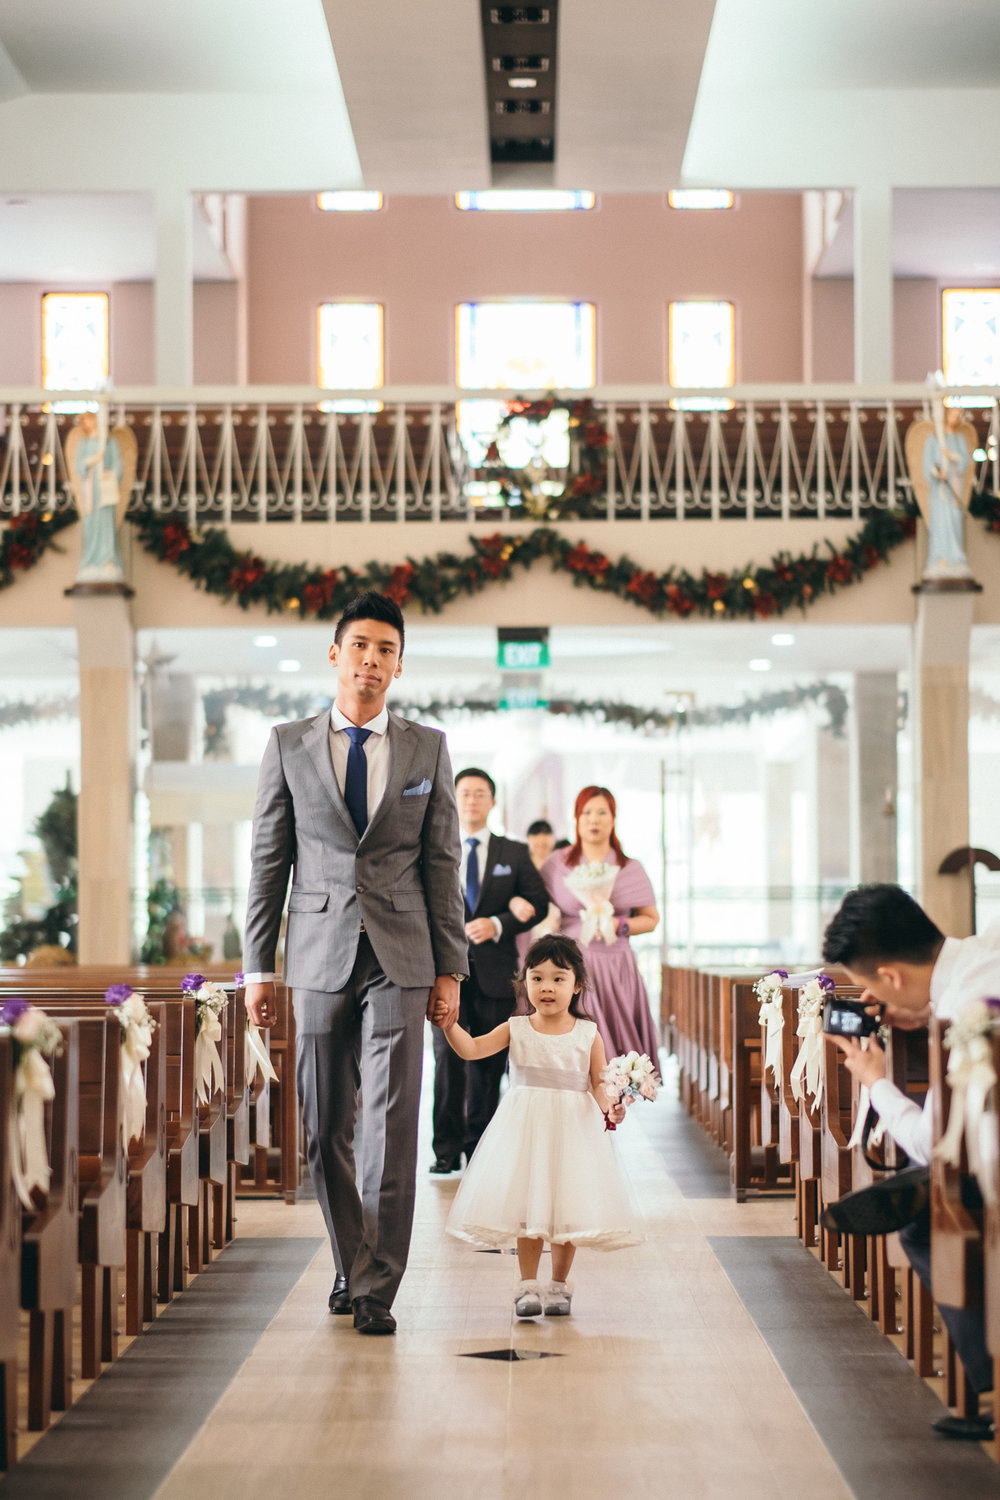 Juxtapose Pix - Wedding - Kelvin & Serene - church regent hotel 00023.jpg